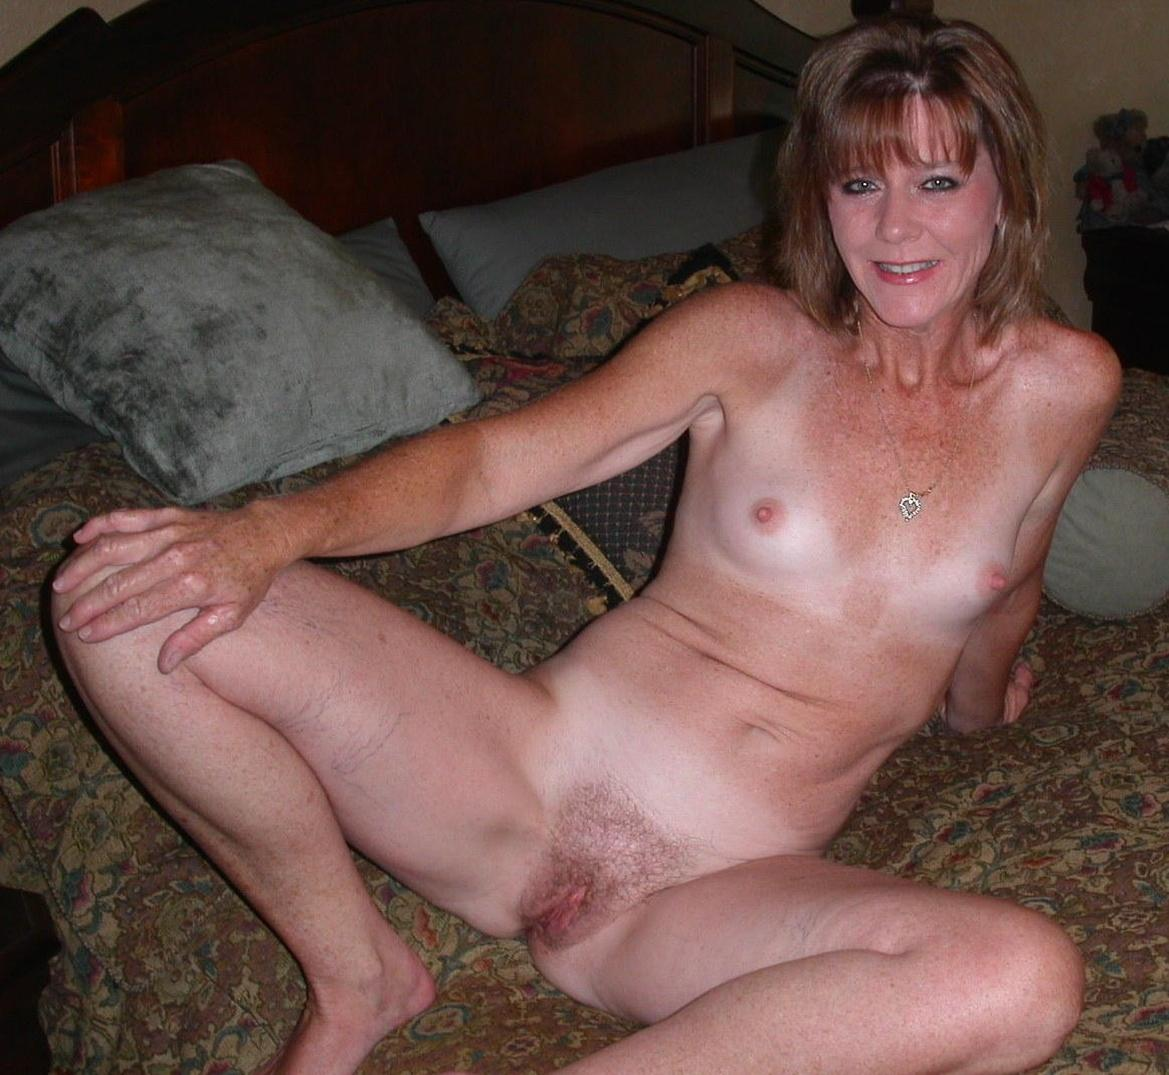 congratulate, this sexy girl spreads pussy solo does plan? Certainly. was